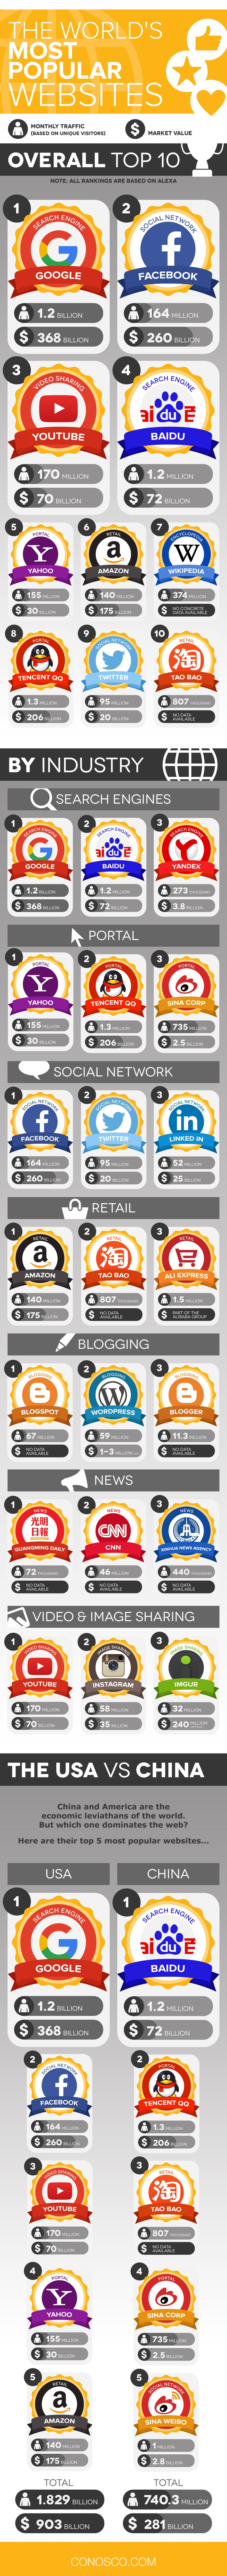 The World's Most Popular Websites